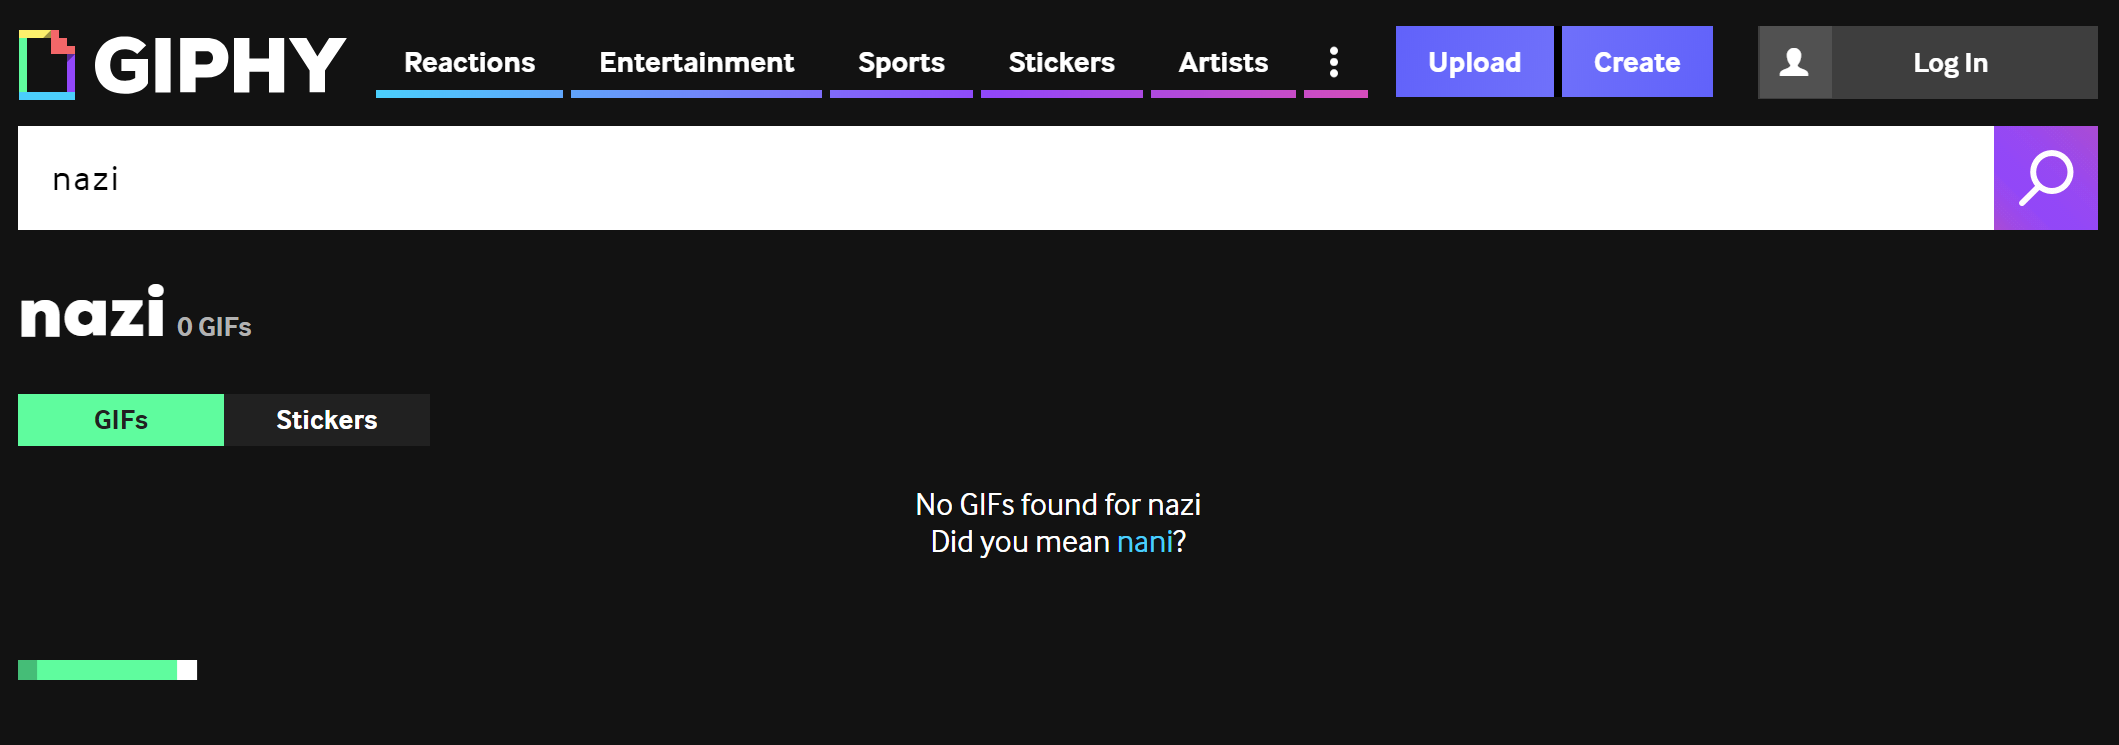 Giphy search for 'nazi', resulting in 'No GIFs found for nazi'